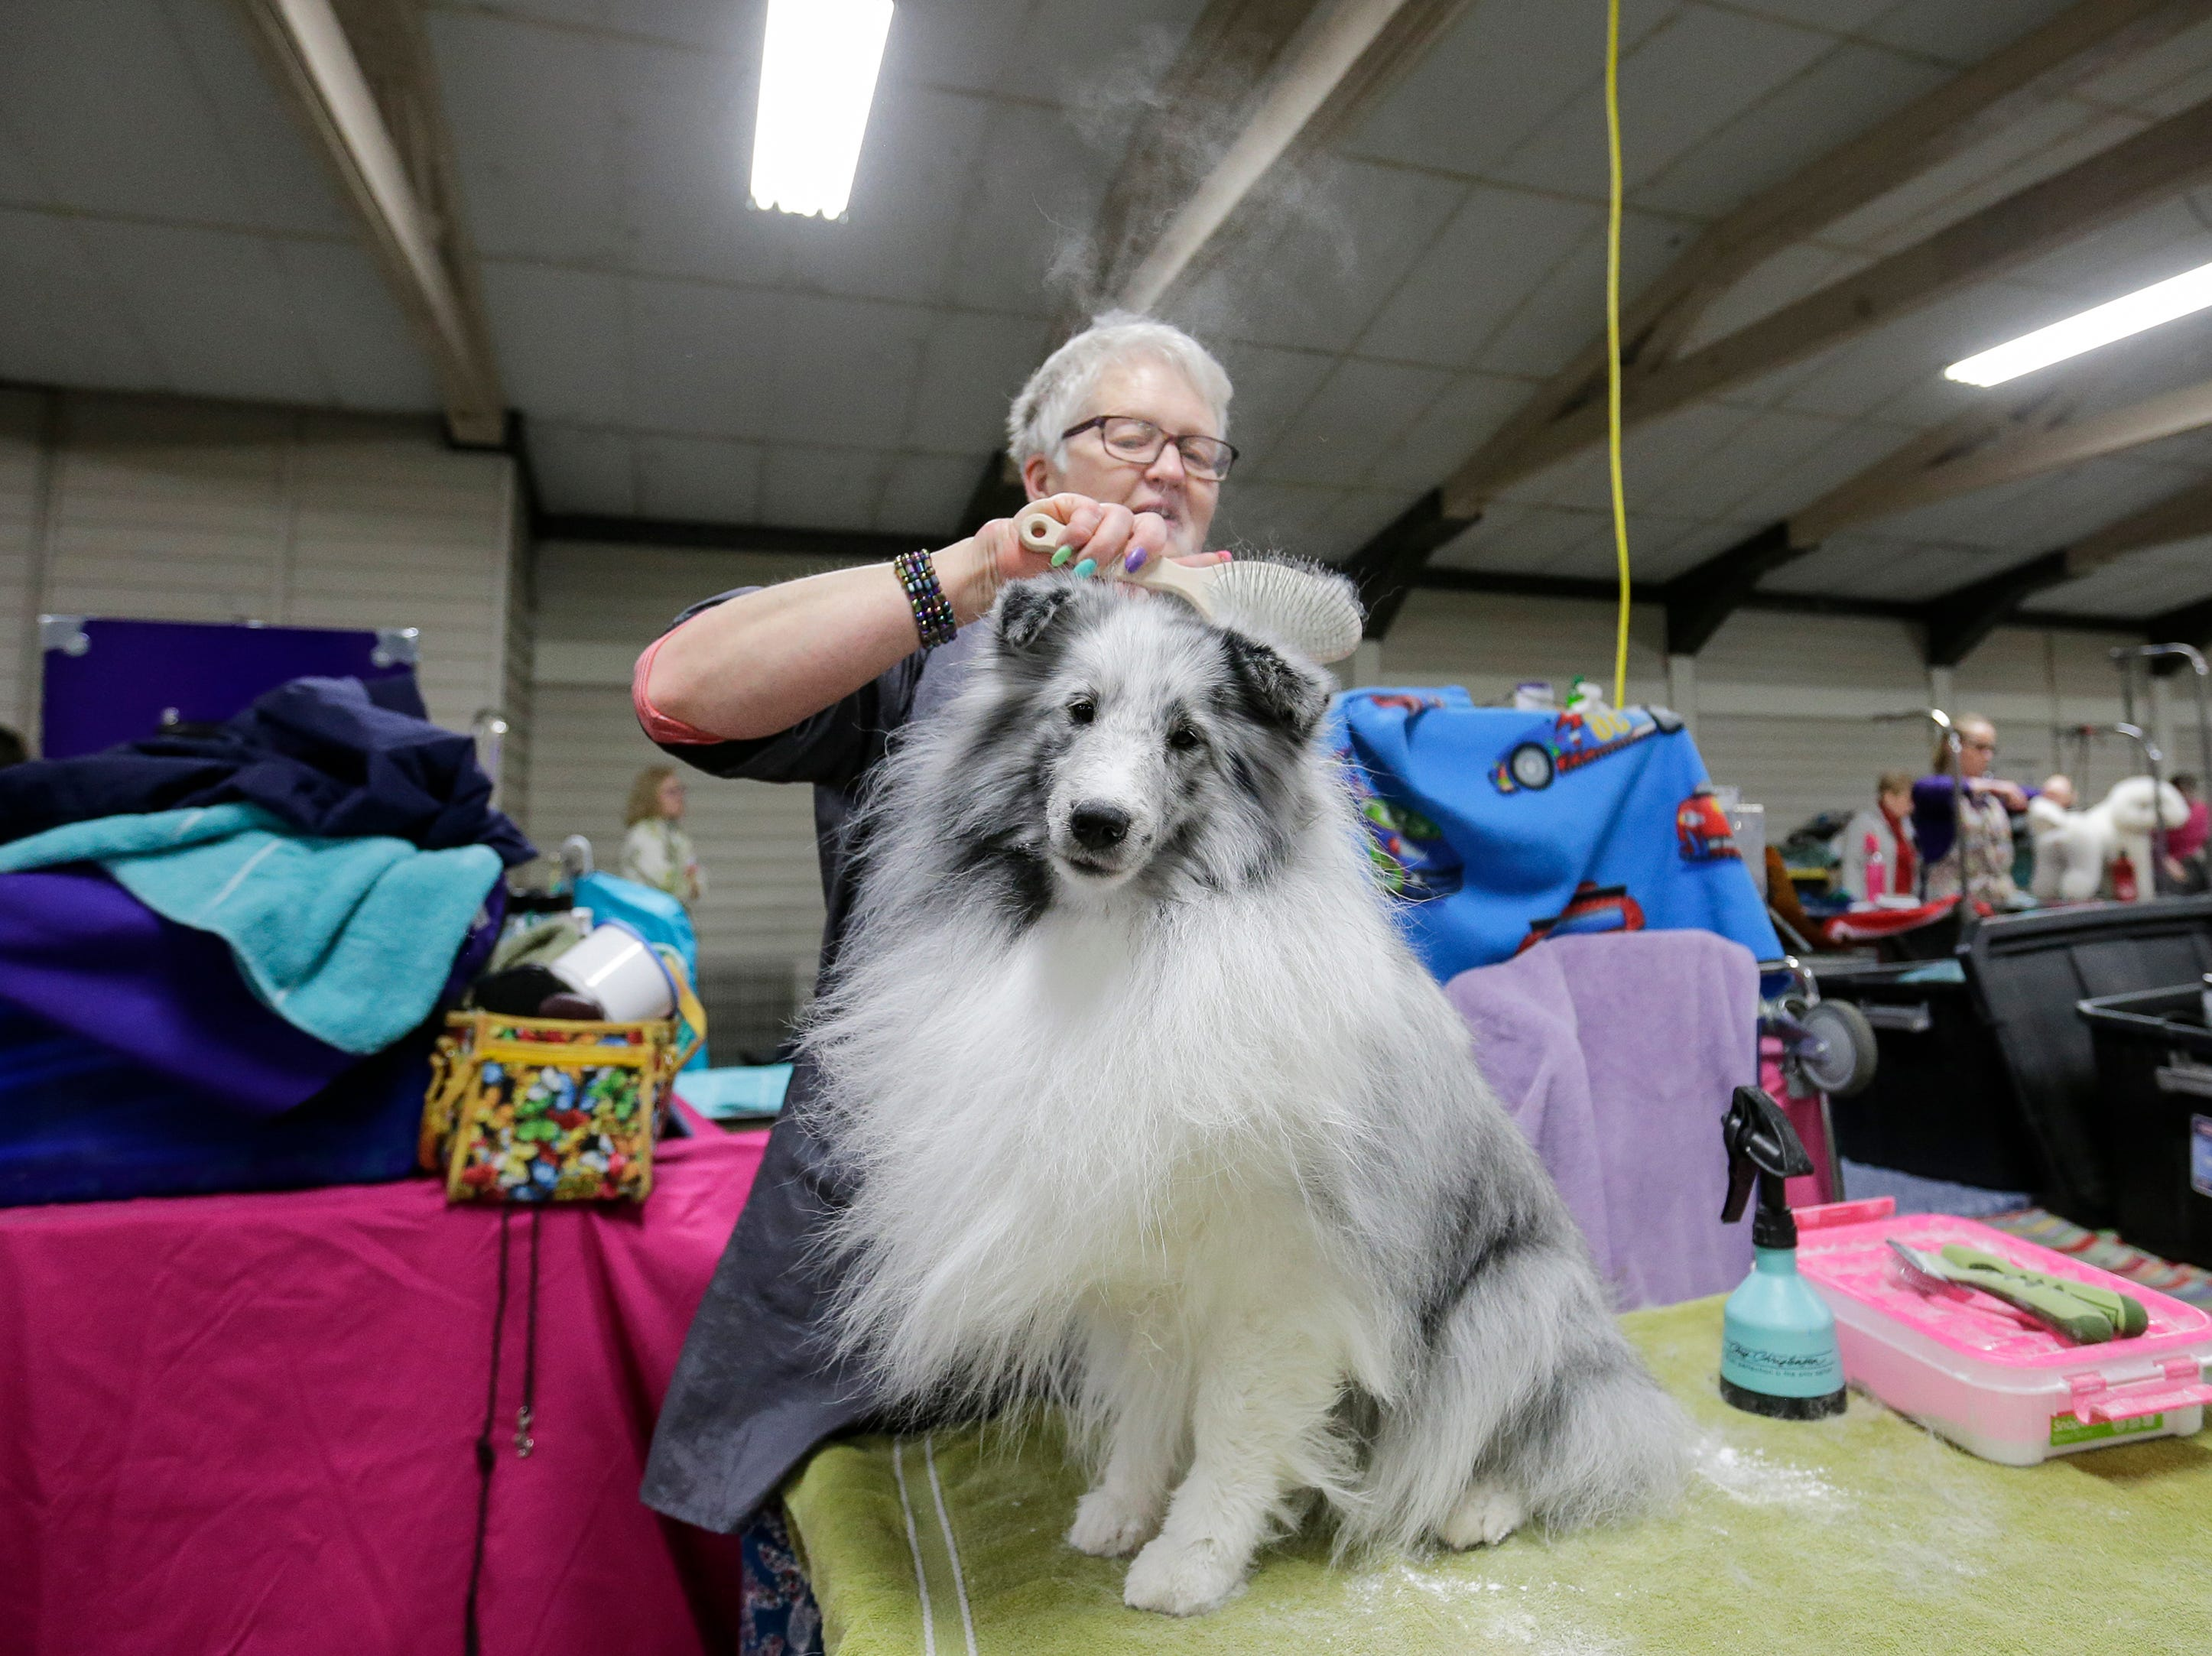 Kay Detemple, of Luxemburg, powders Liam her Shetland sheepdog during the Northeast Wisconsin Dog Show Classic at the Manitowoc County Expo Center Thursday, March 28, 2019, in Manitowoc, Wis. Joshua Clark/USA TODAY NETWORK-Wisconsin